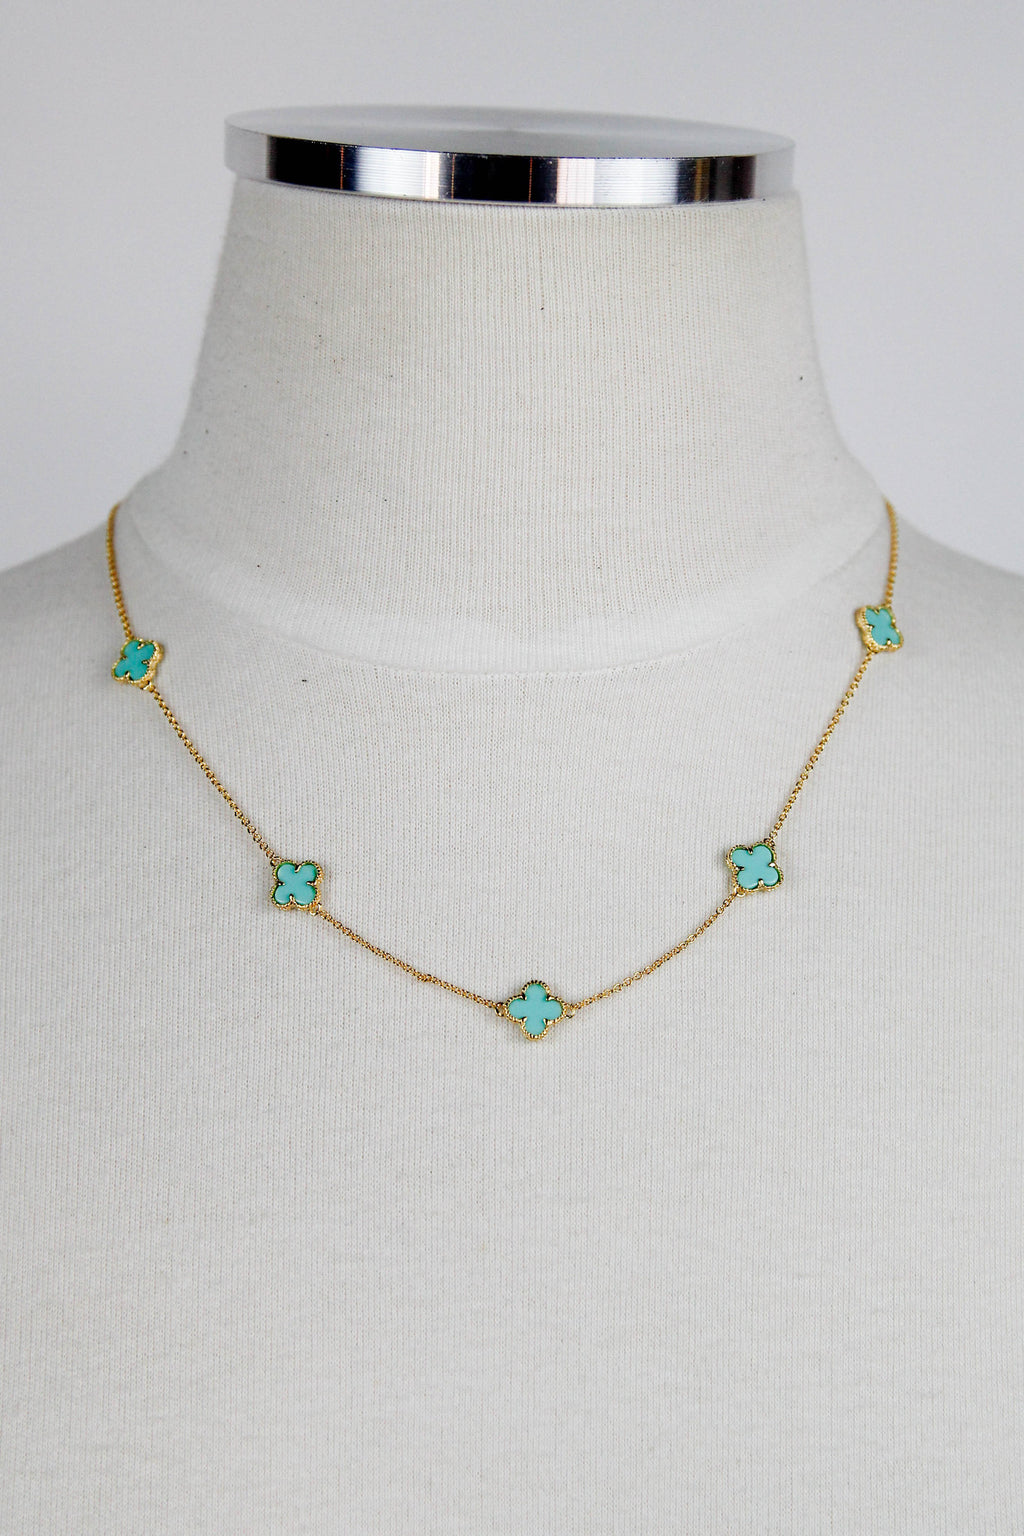 Turquoise Short Clover Necklace